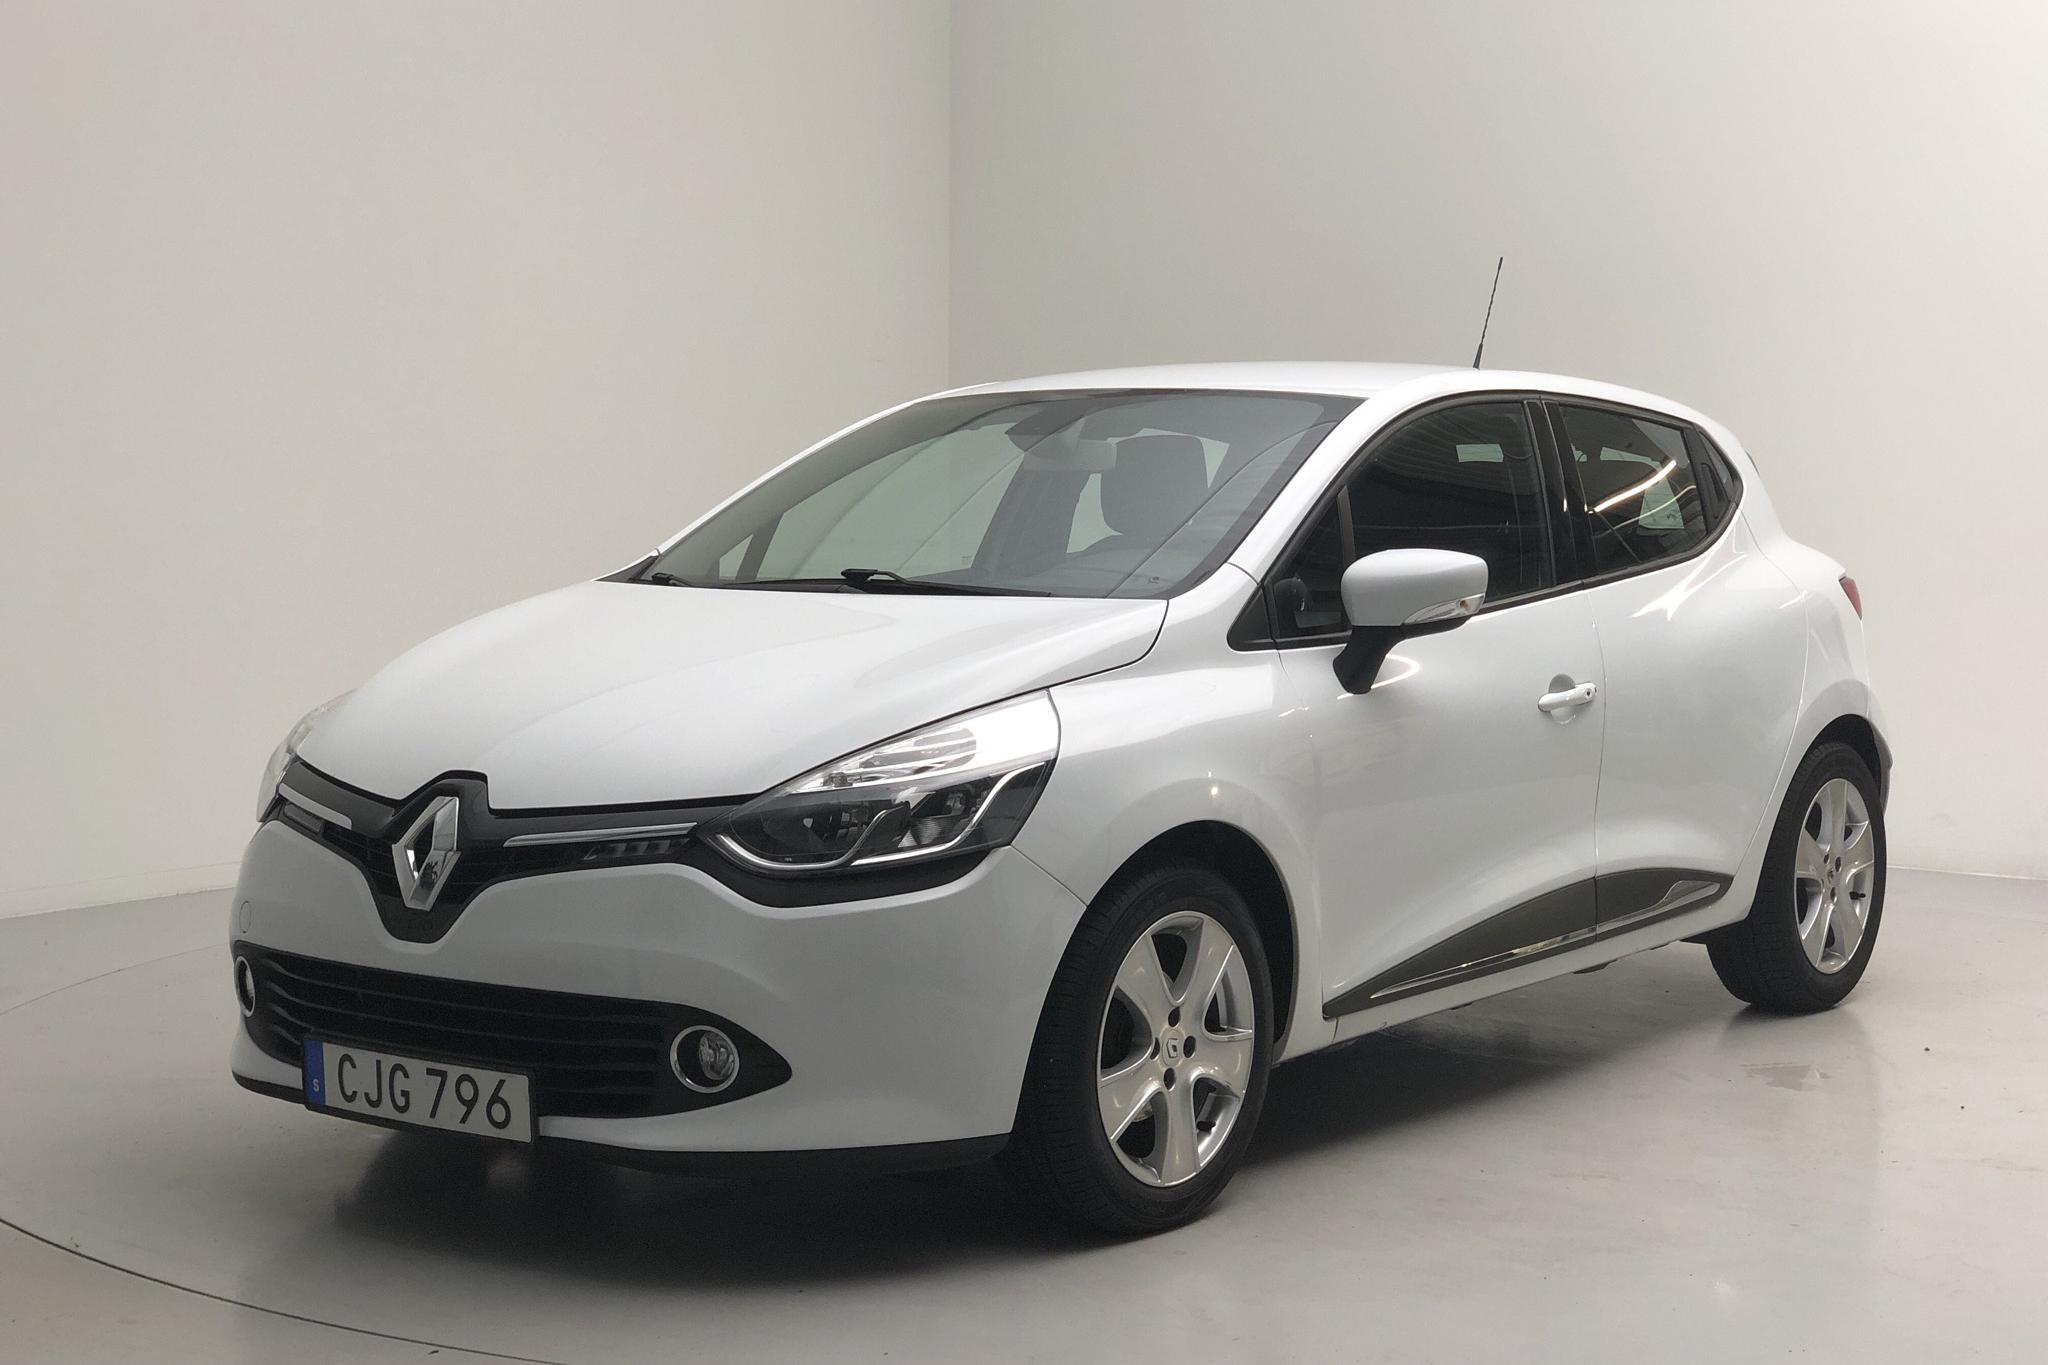 Renault Clio IV 0.9 TCe 90 5dr (90hk) - 69 110 km - Manual - white - 2014